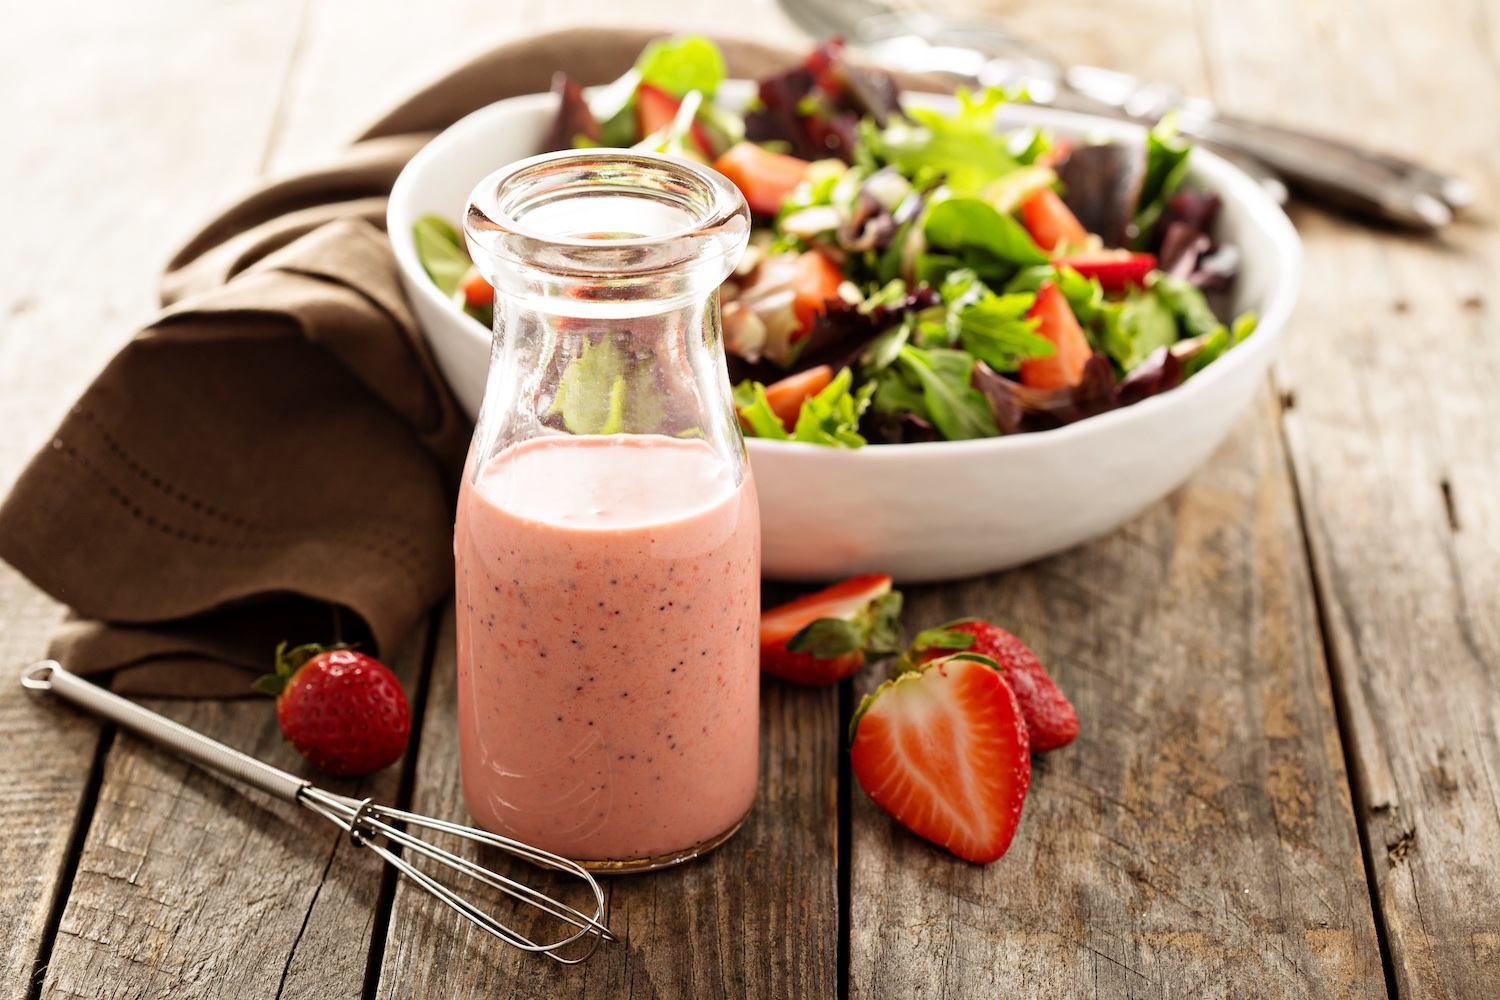 Strawberry poppy seed salad dressing